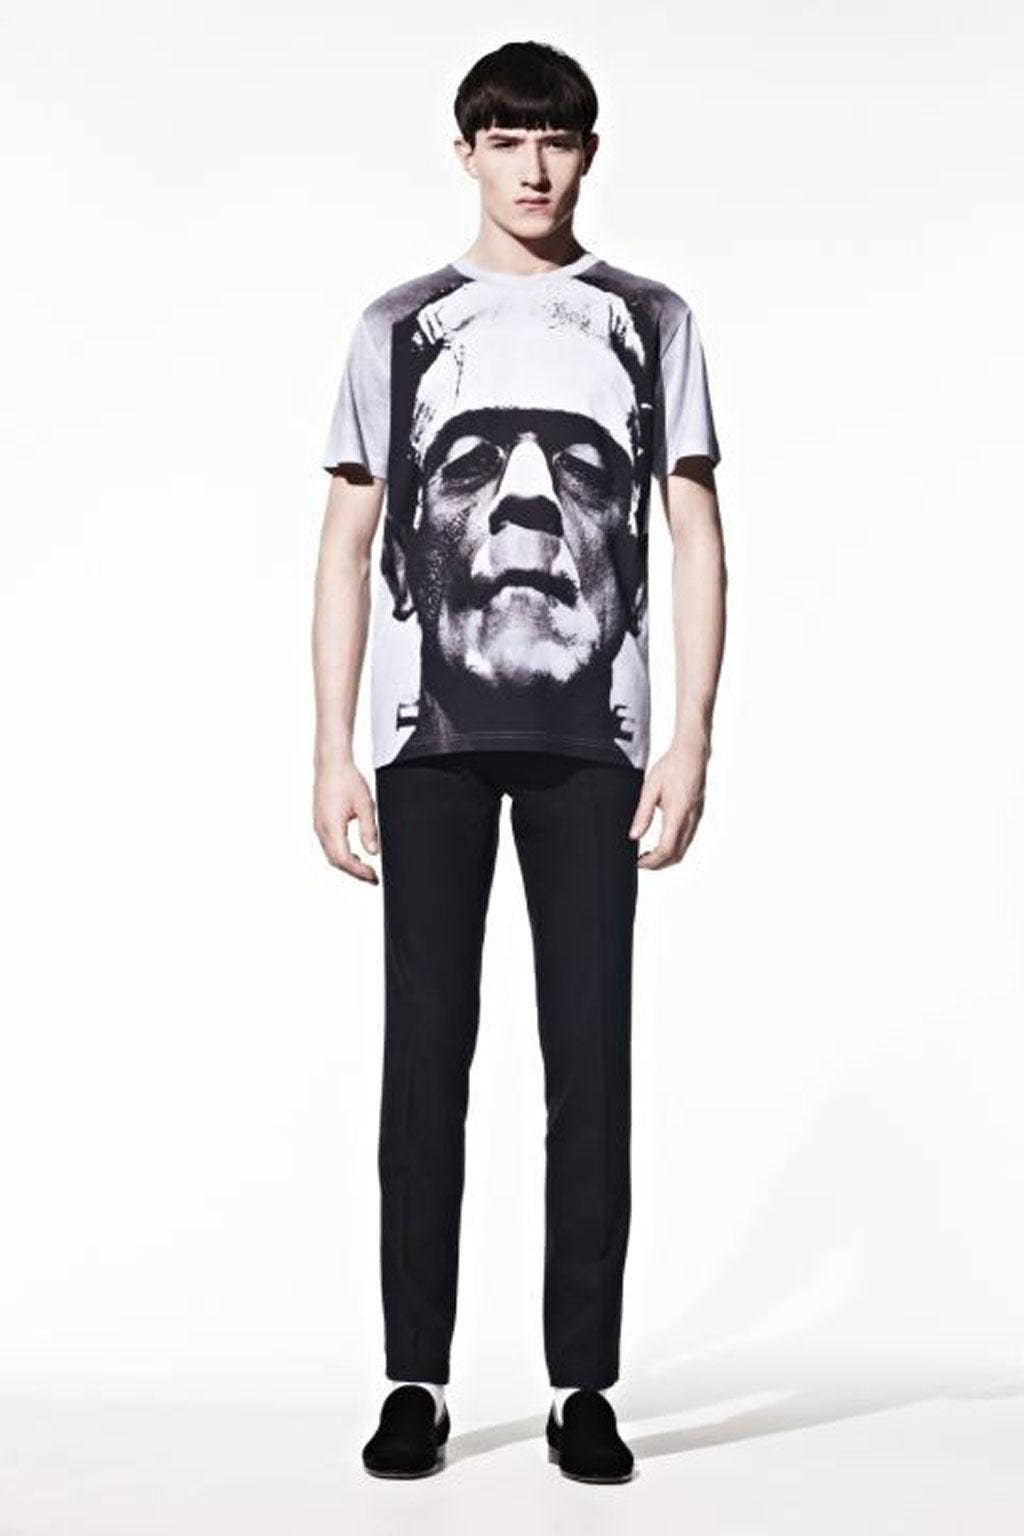 Designers such as Christopher Kane (pictured), Jonathan Saunders and Richard Nicoll bring to the arena all the people-pleasing and craze creating skills they have learnt from womenswear, in collections that excite and enthuse even the most recalcitrant of